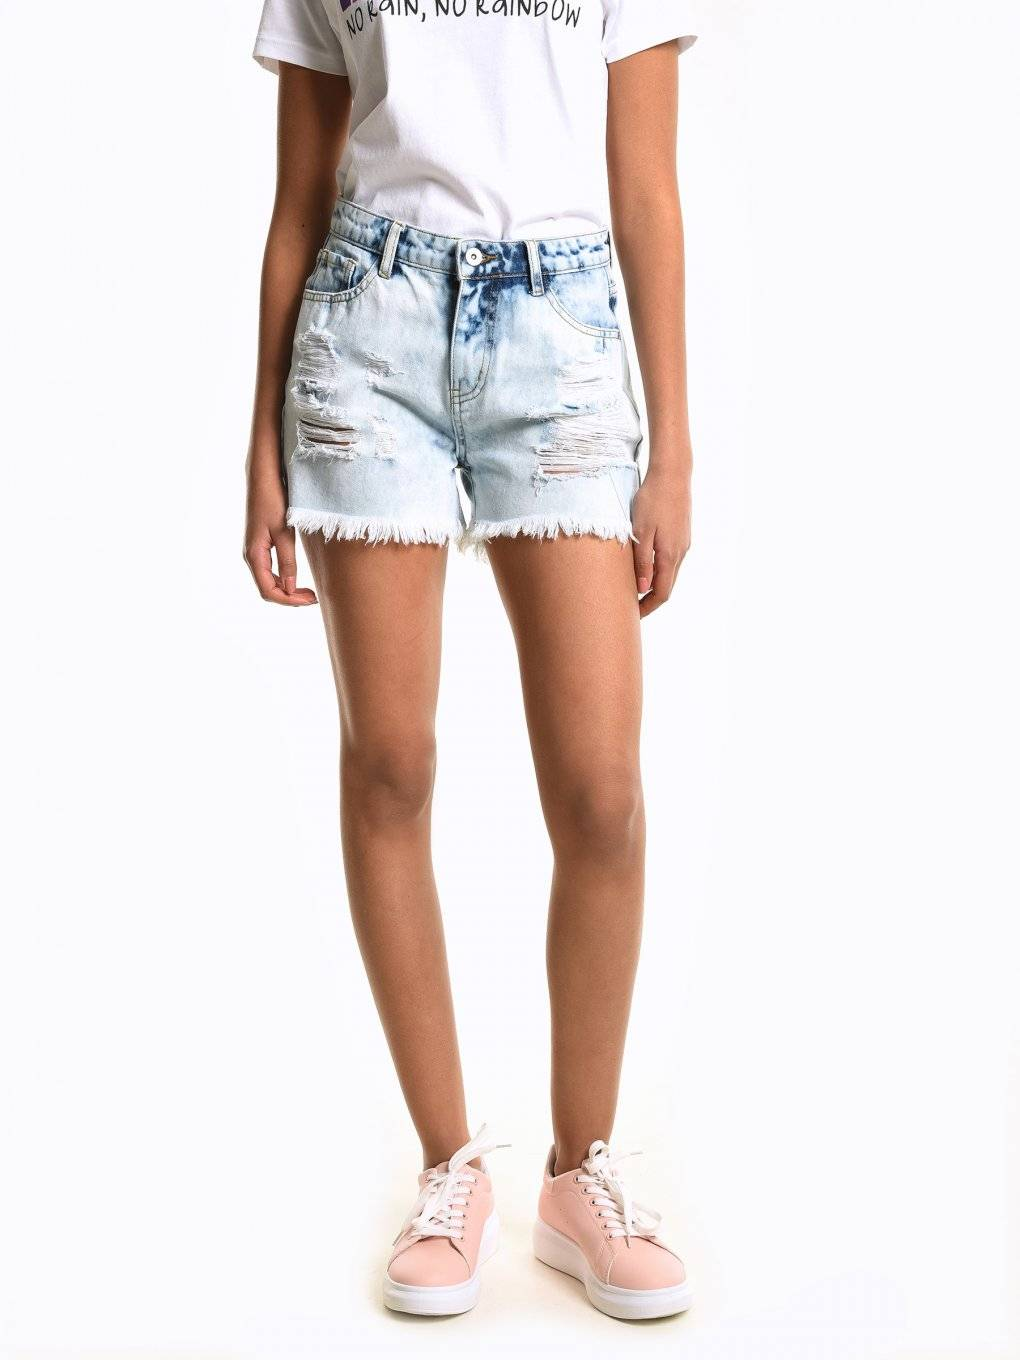 Denim shorts with damages